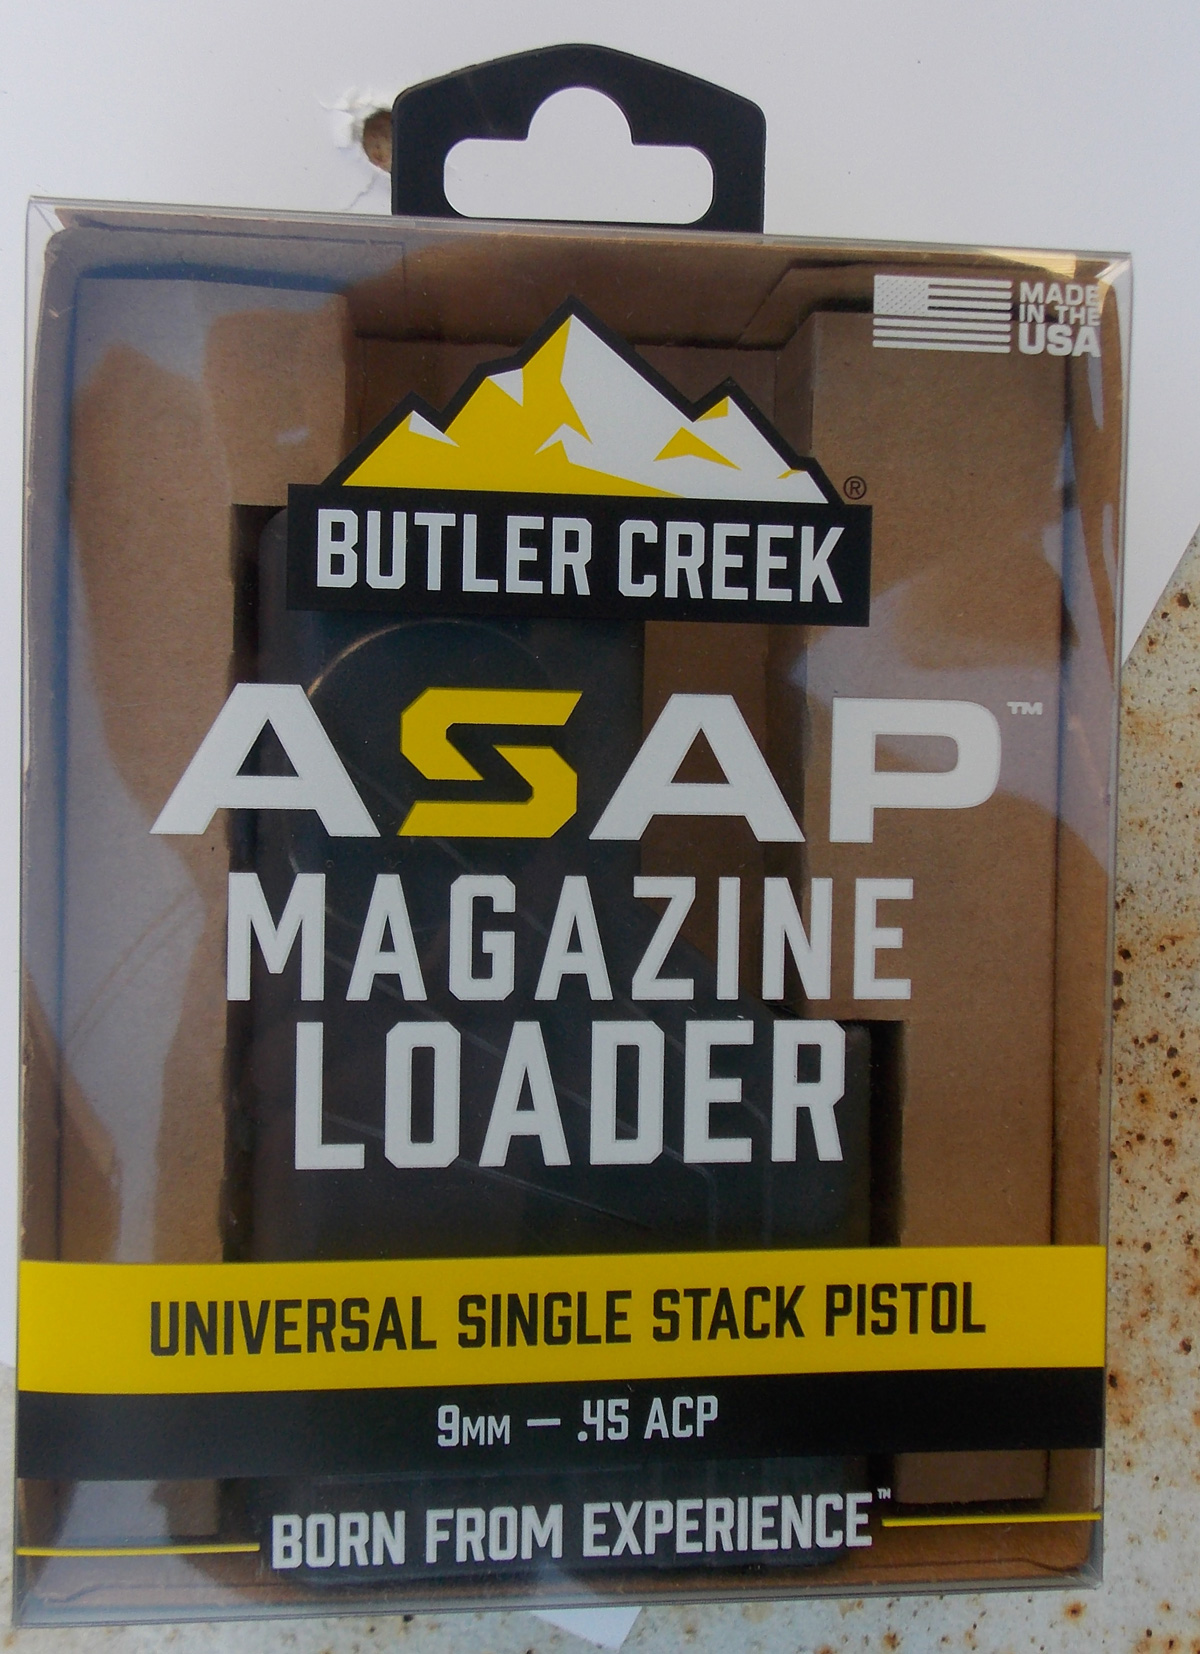 Butler Creek magazine loader